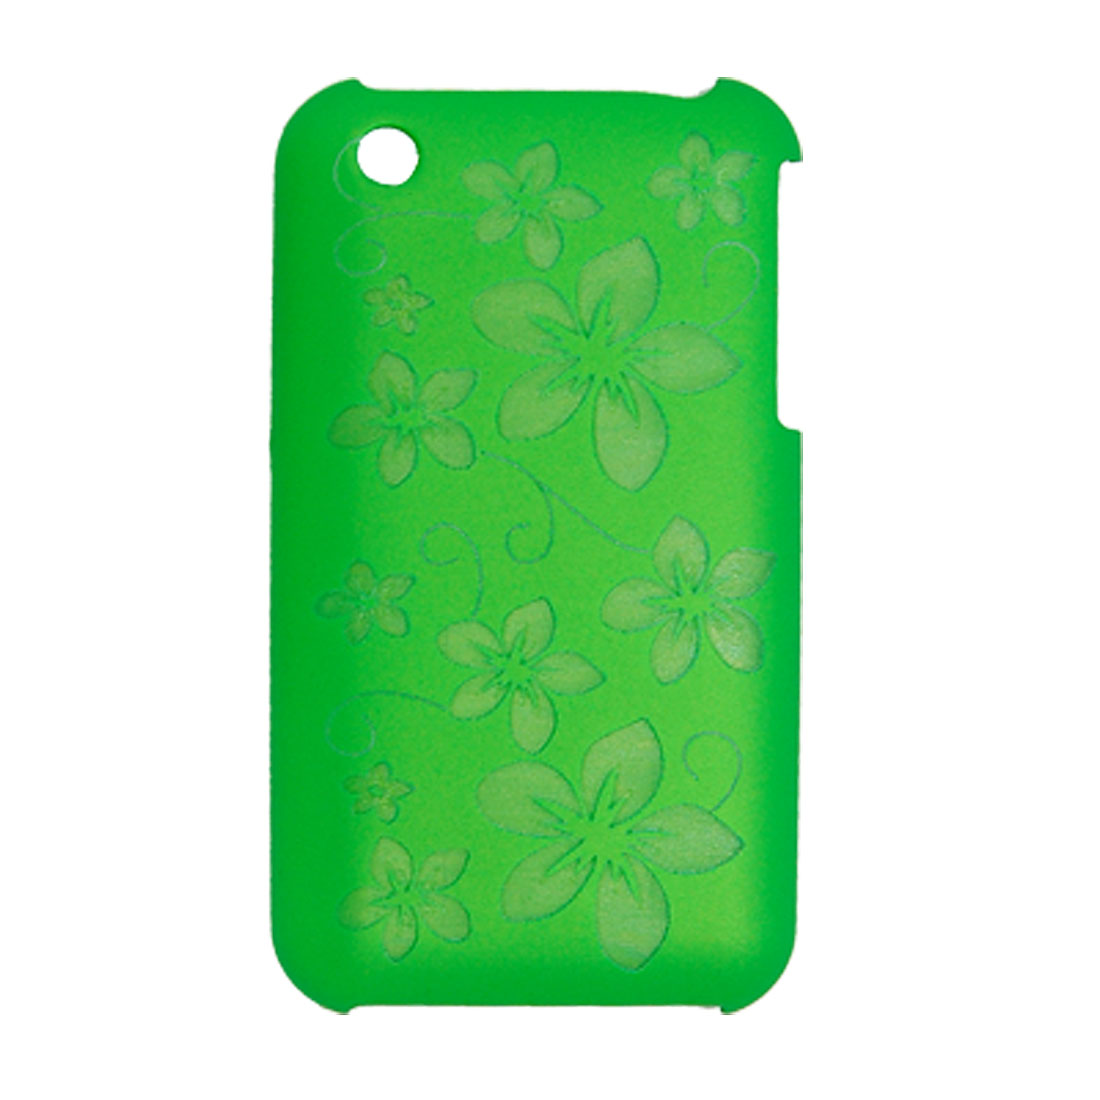 Mobile Flower Pattern Hard Plastic Back Case Skin for iPhone 3G and 3G S